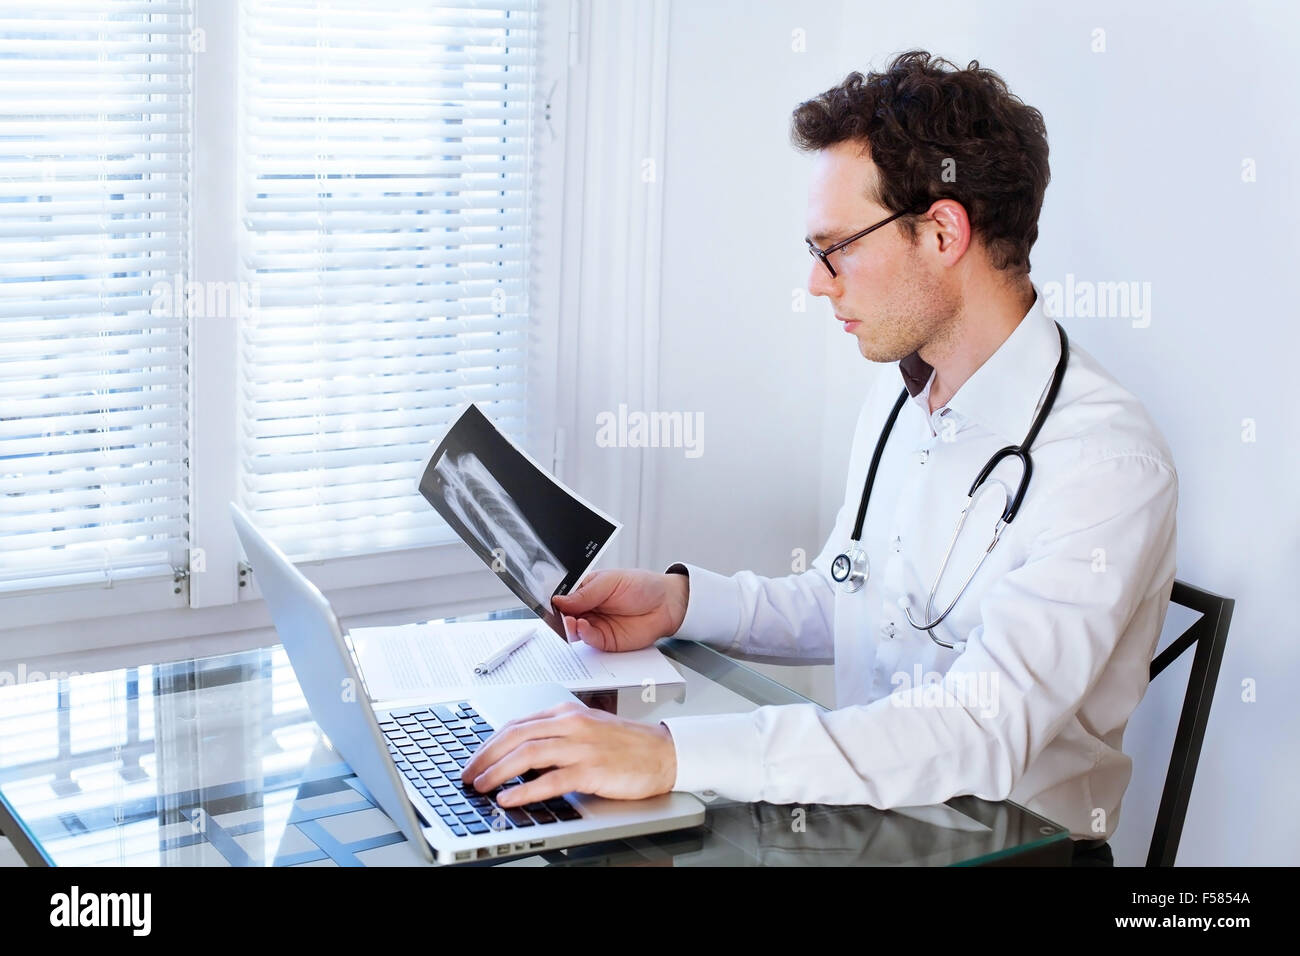 doctor in front of computer checking xray photo - Stock Image